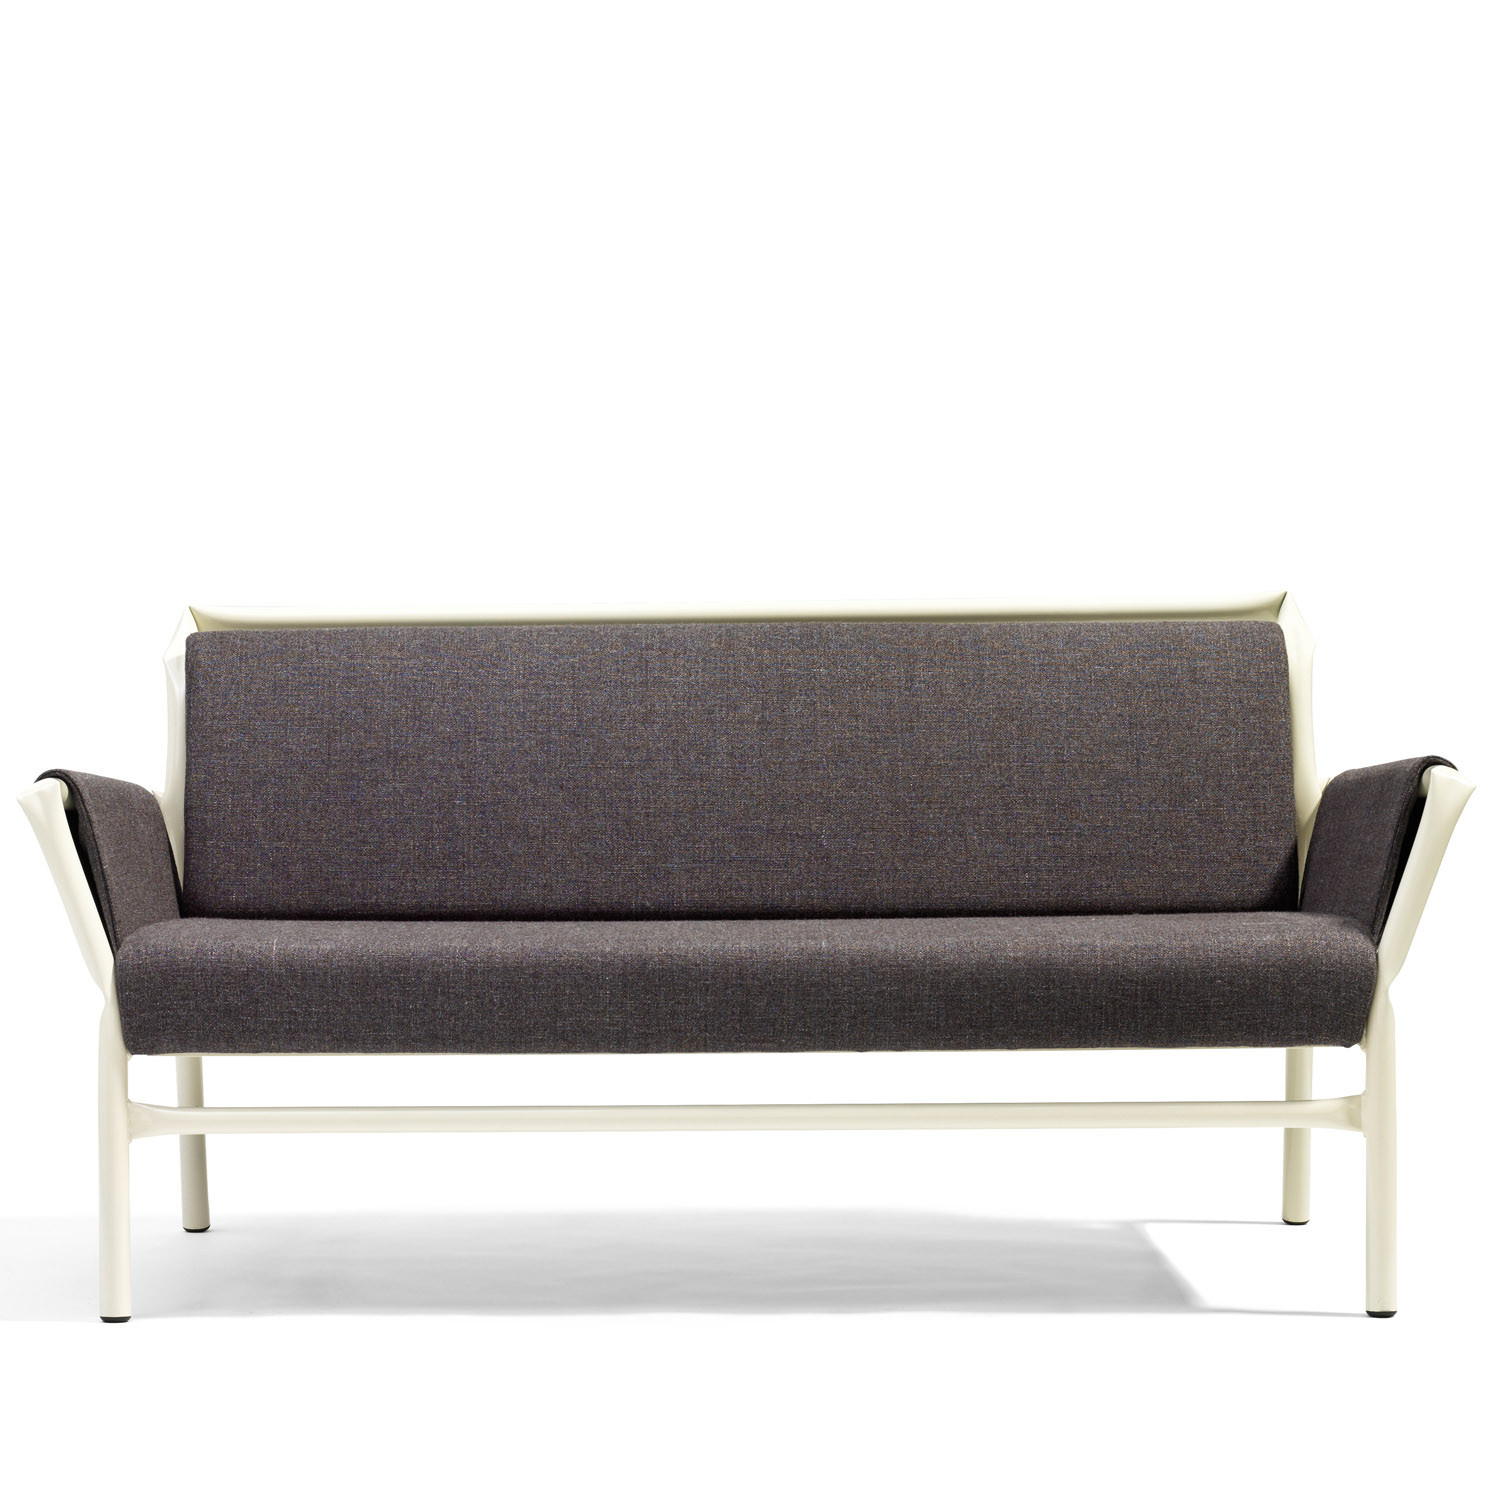 Superkink Lounge Sofa by Bla Station